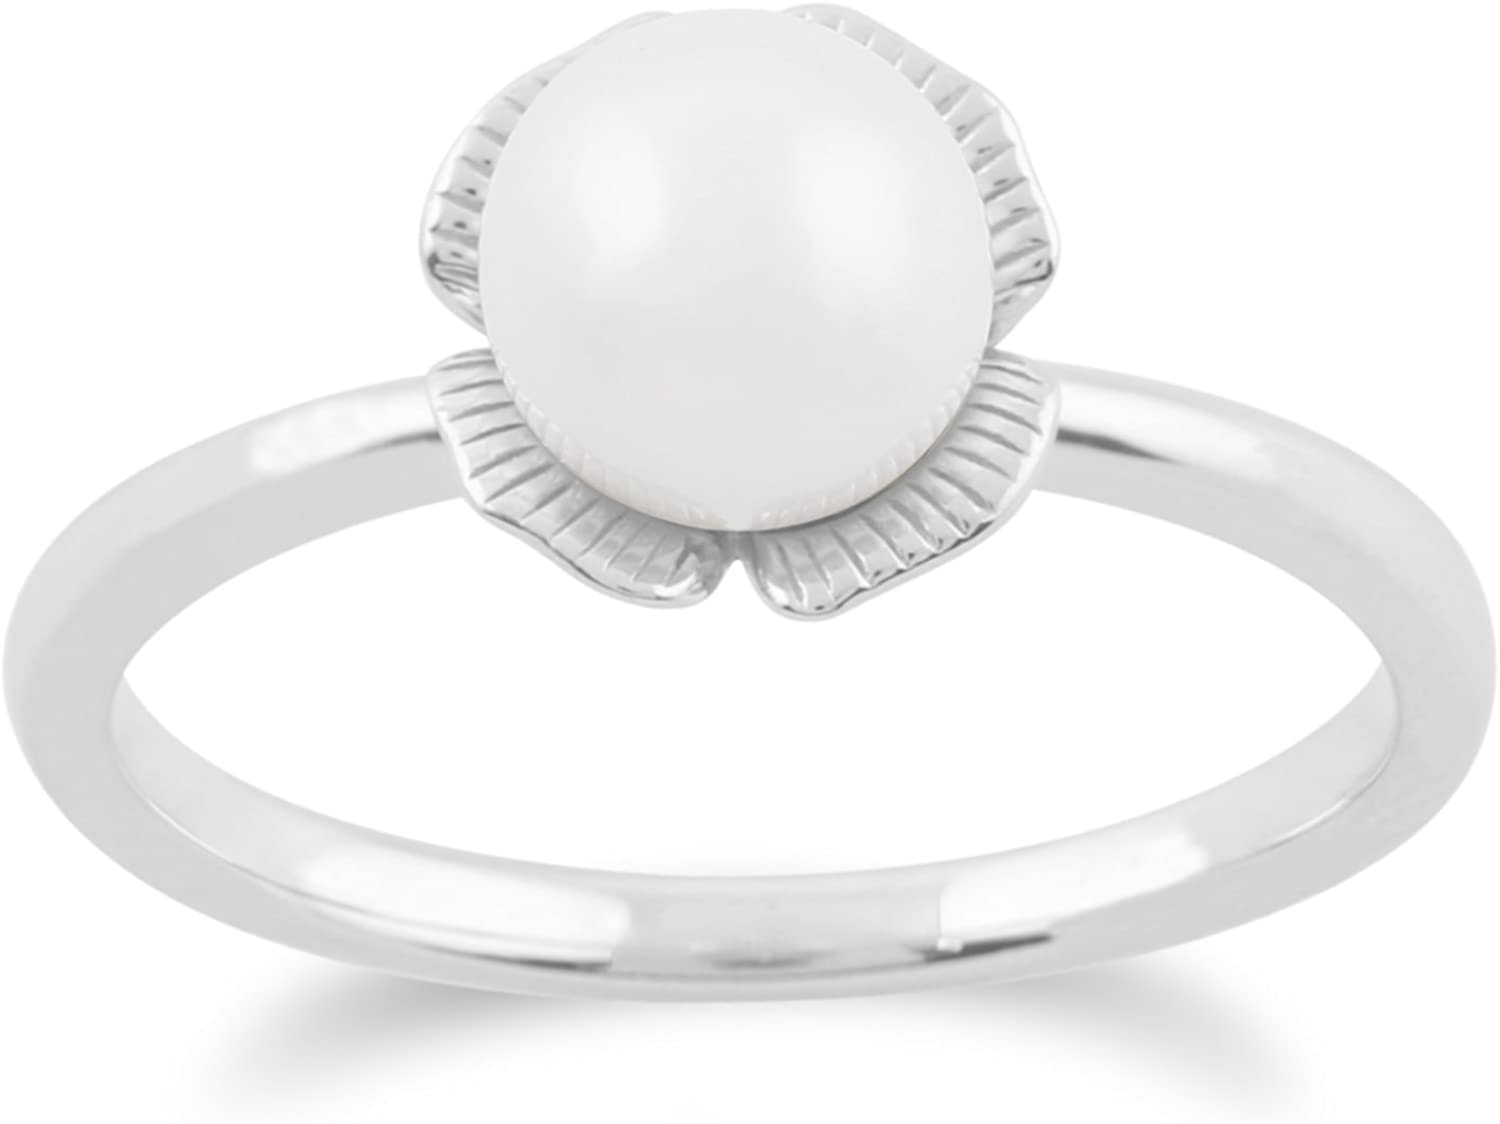 Gemondo Pearl Ring, 925 Sterling Silver Ginkgo Flower 1.88ct Pearl Ring